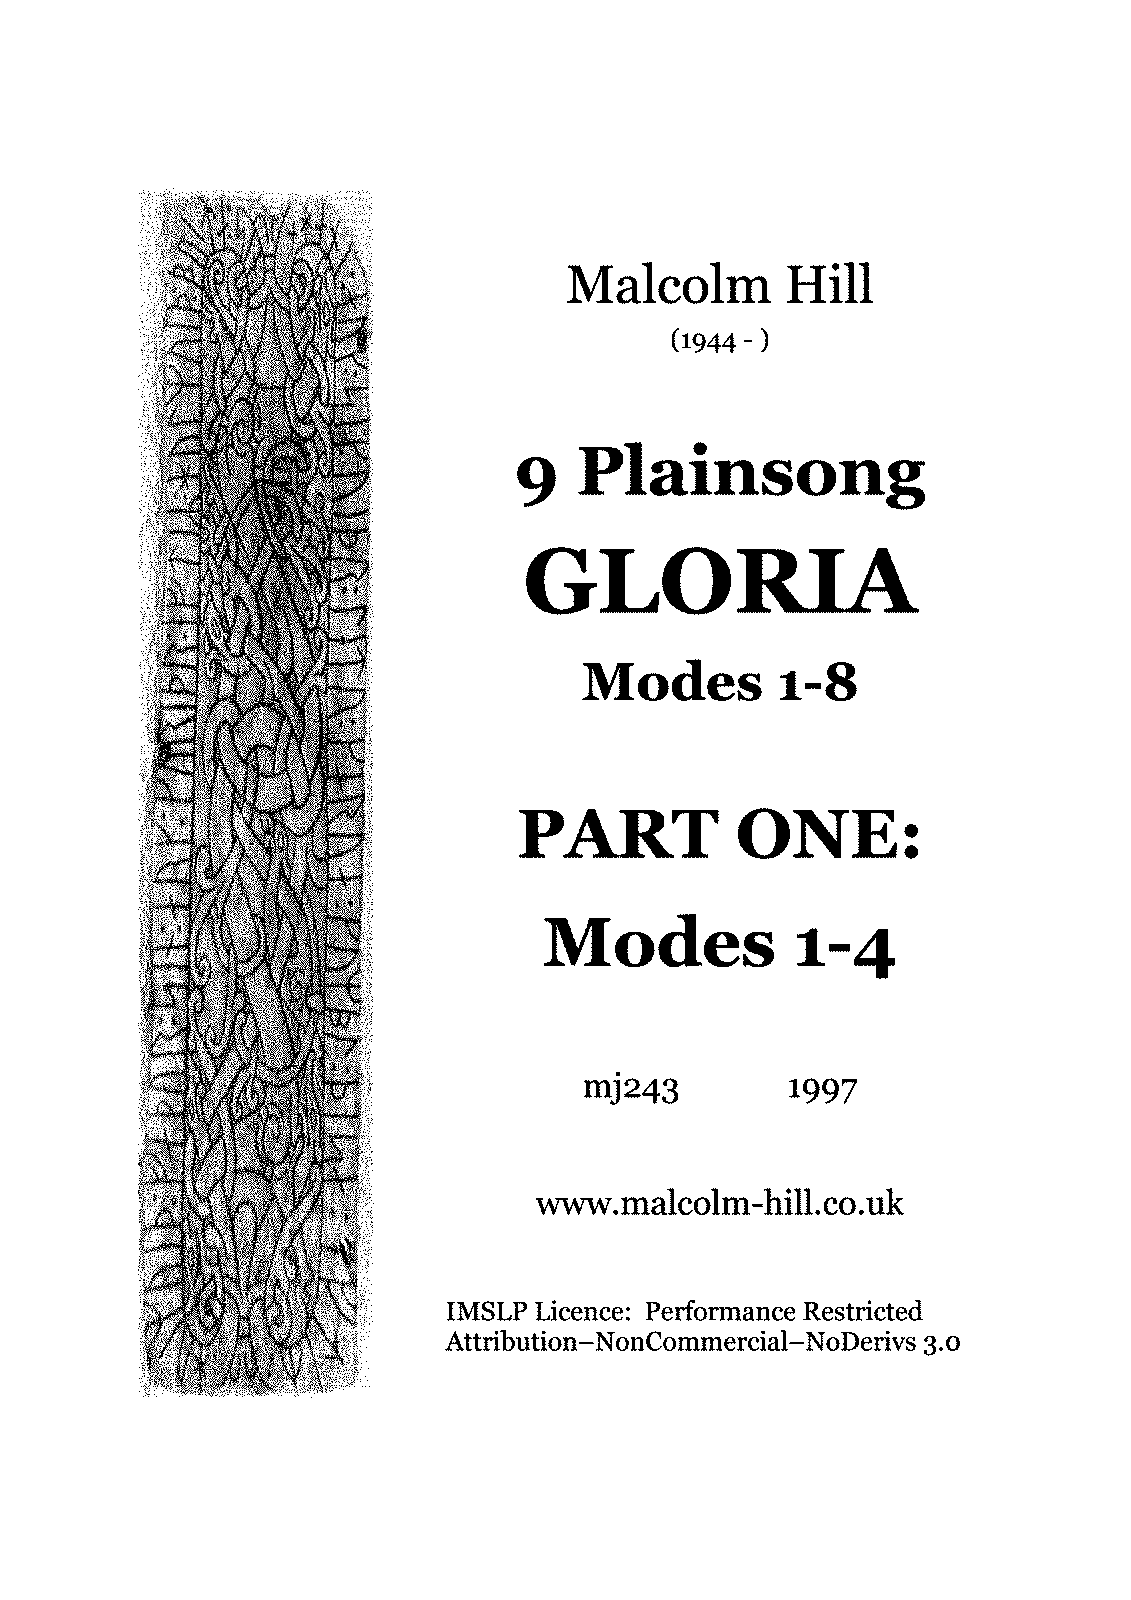 PMLP657714-9 Plainsong Gloria a Modes 1-4, mj243 (Hill, Malcolm).pdf